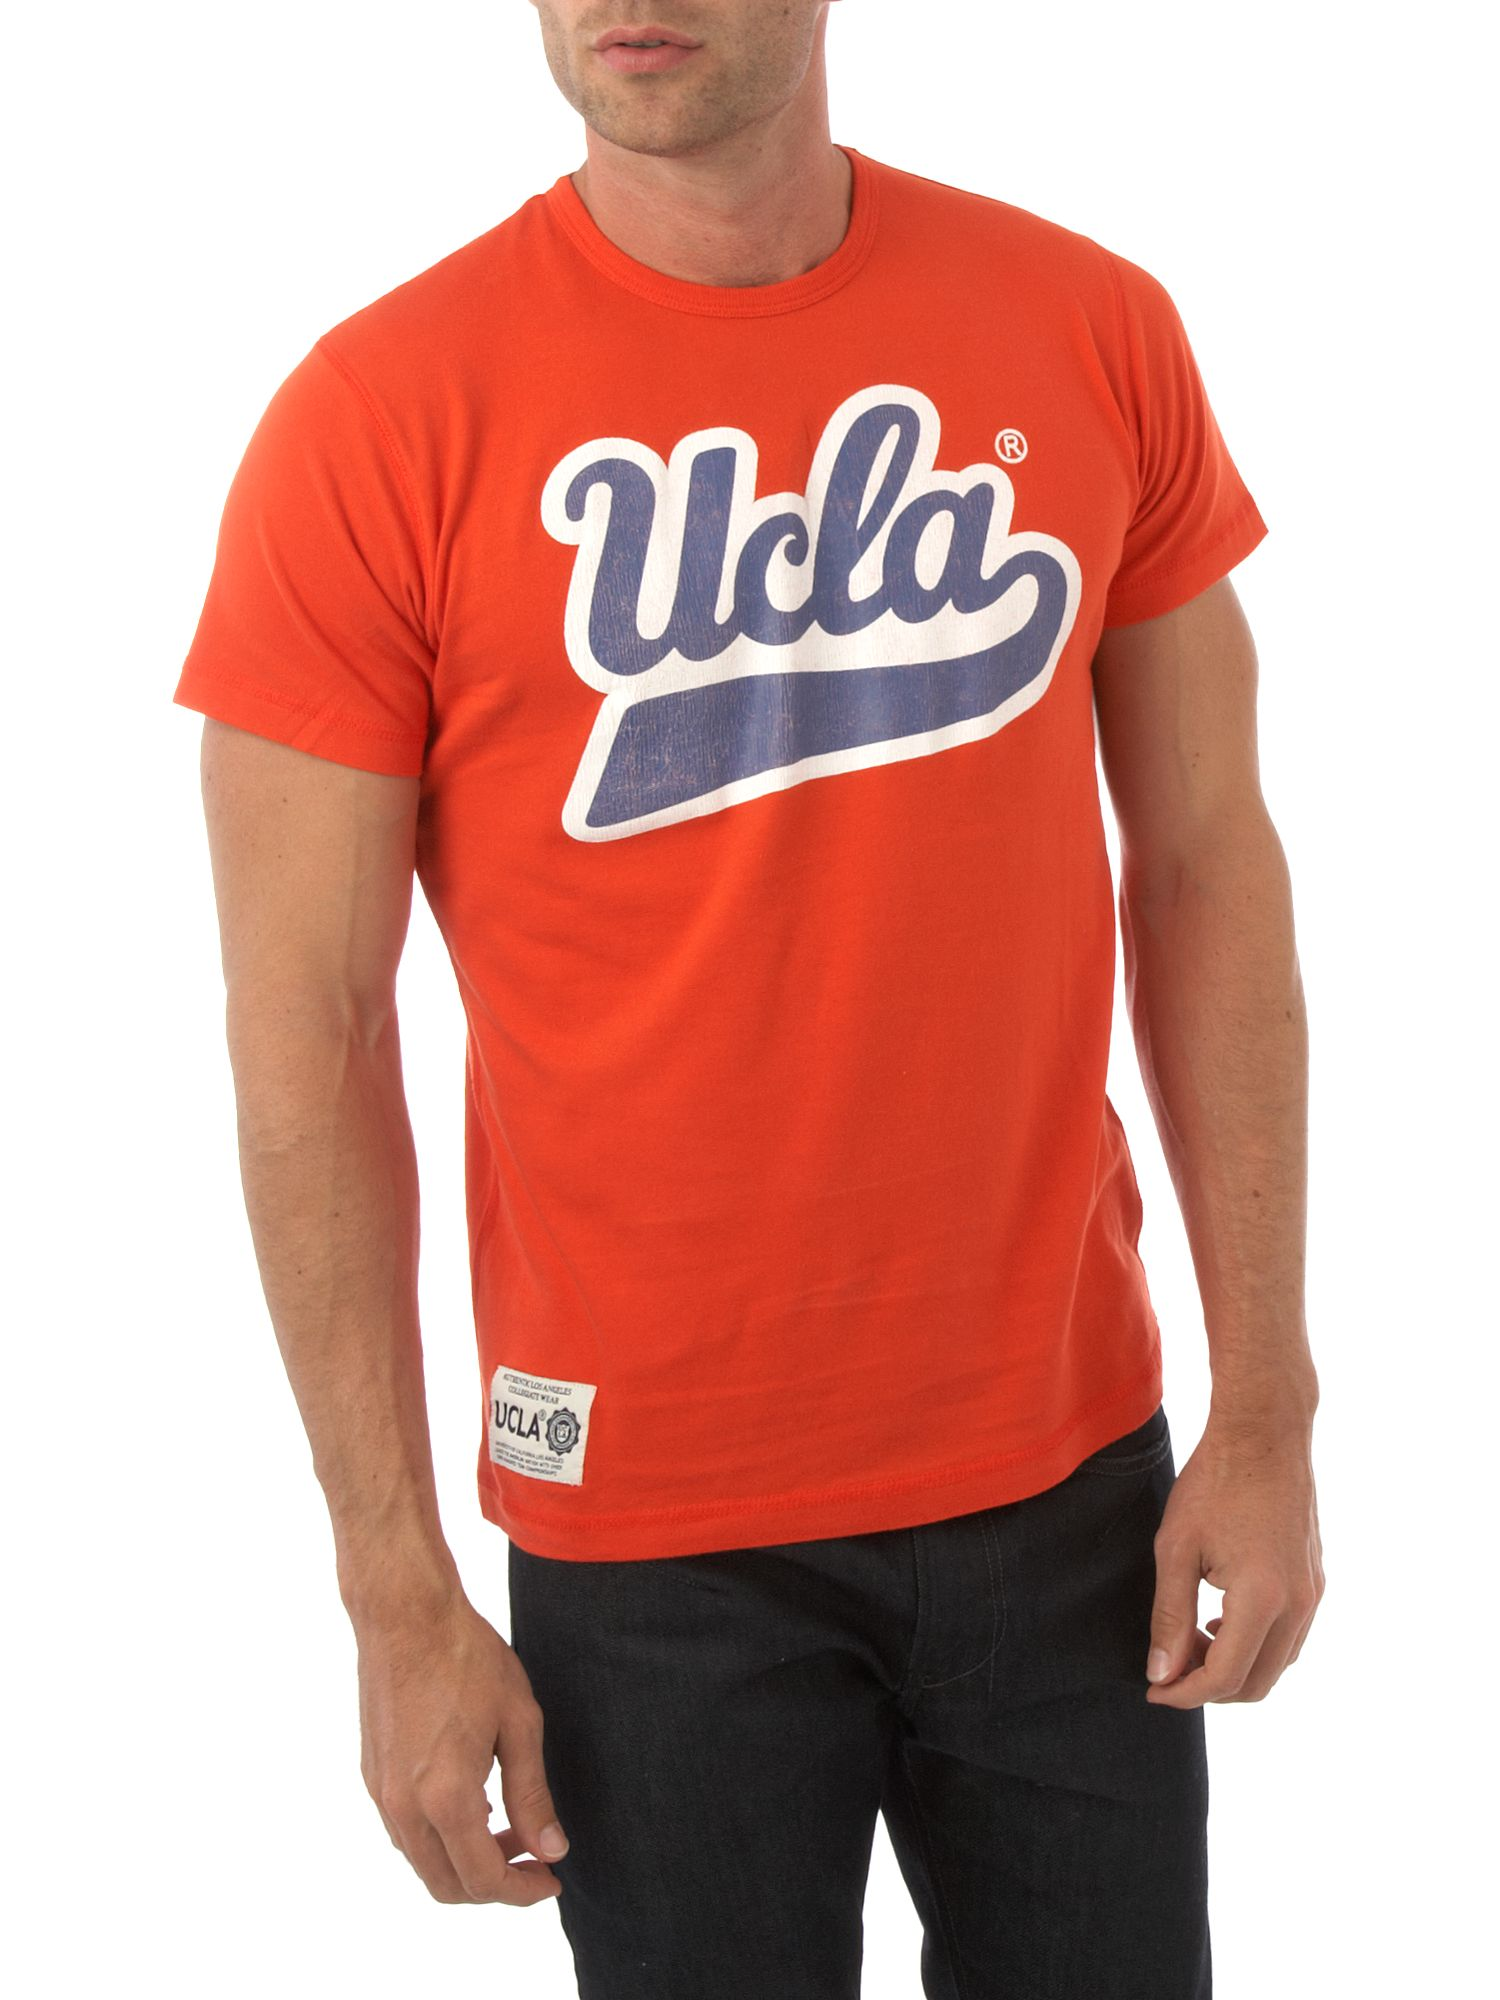 UCLA Fat script T-shirt Red product image